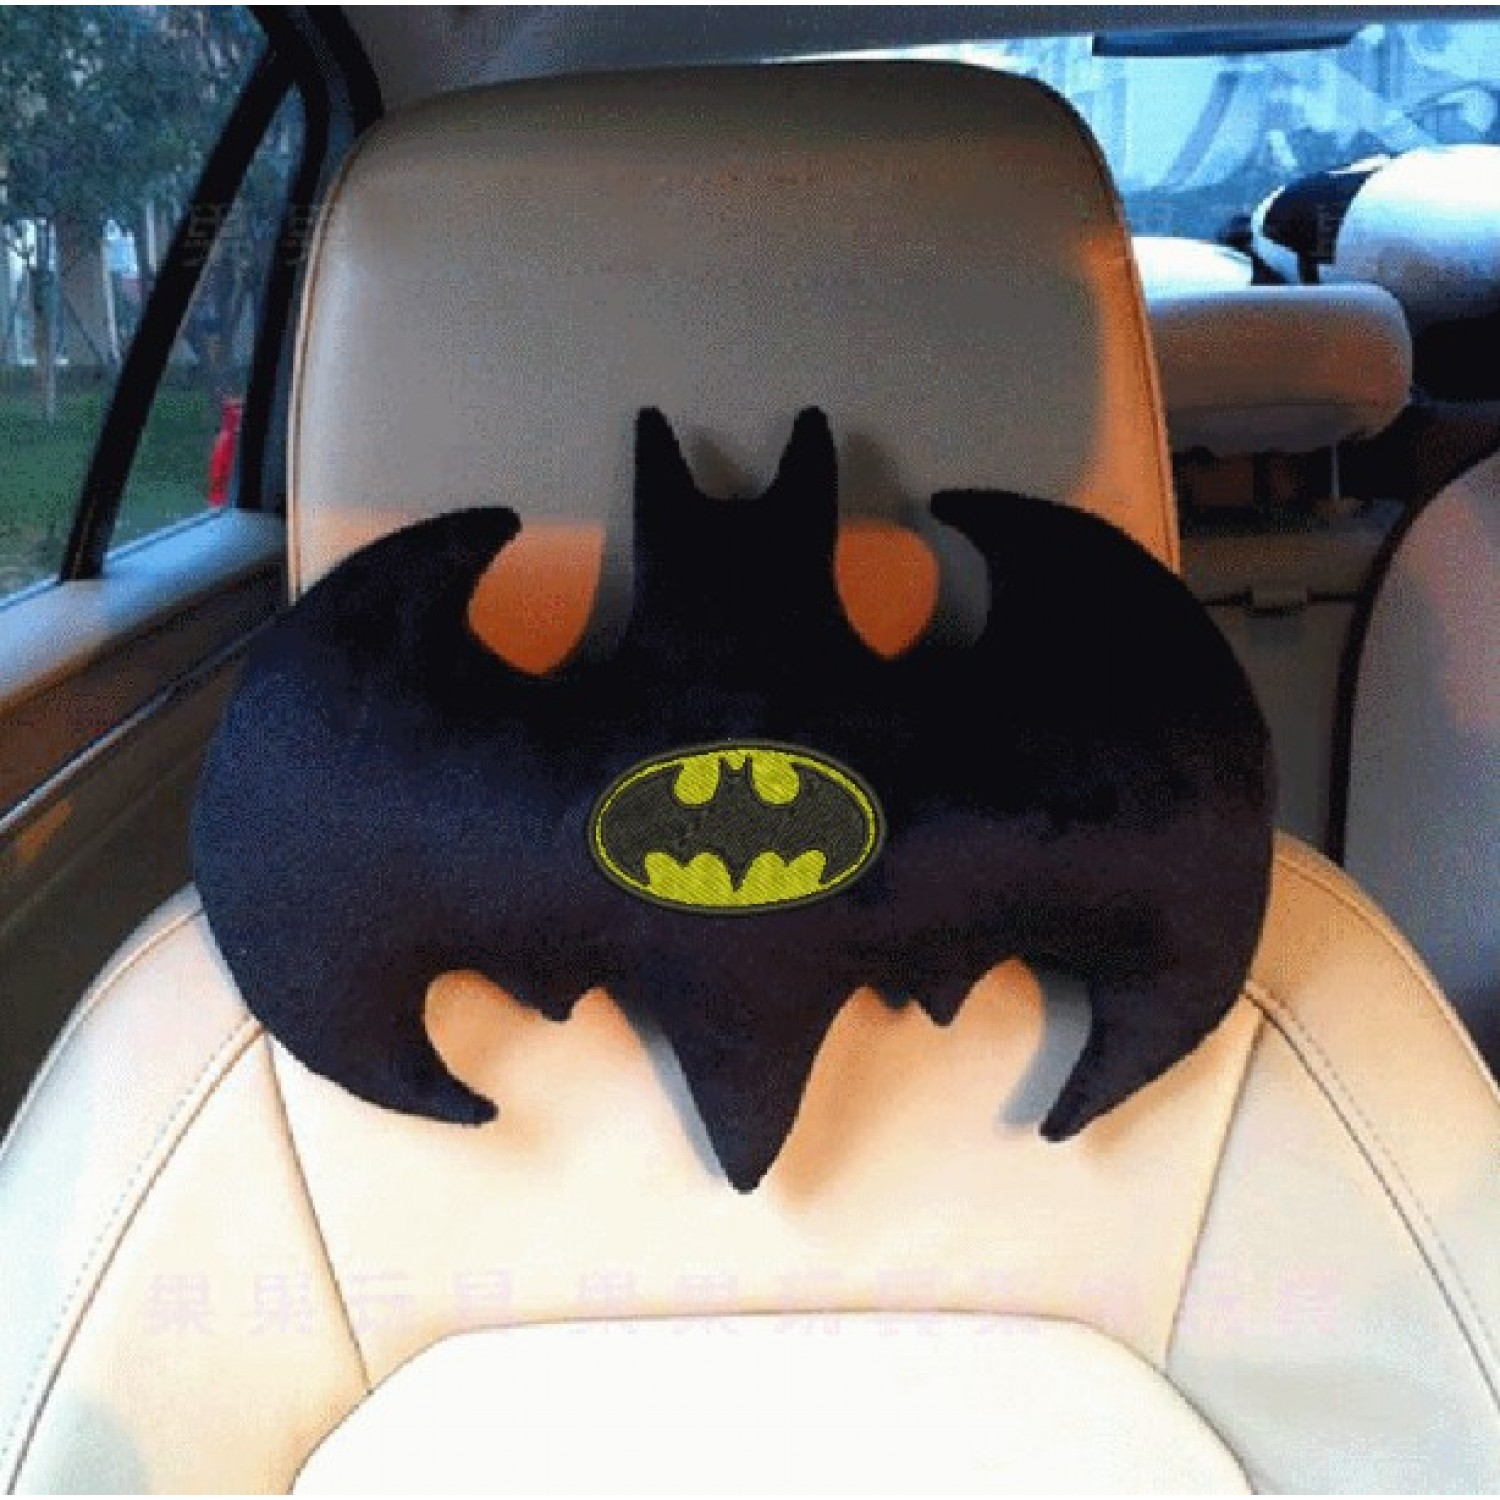 Batman Pillow ith in the hoop